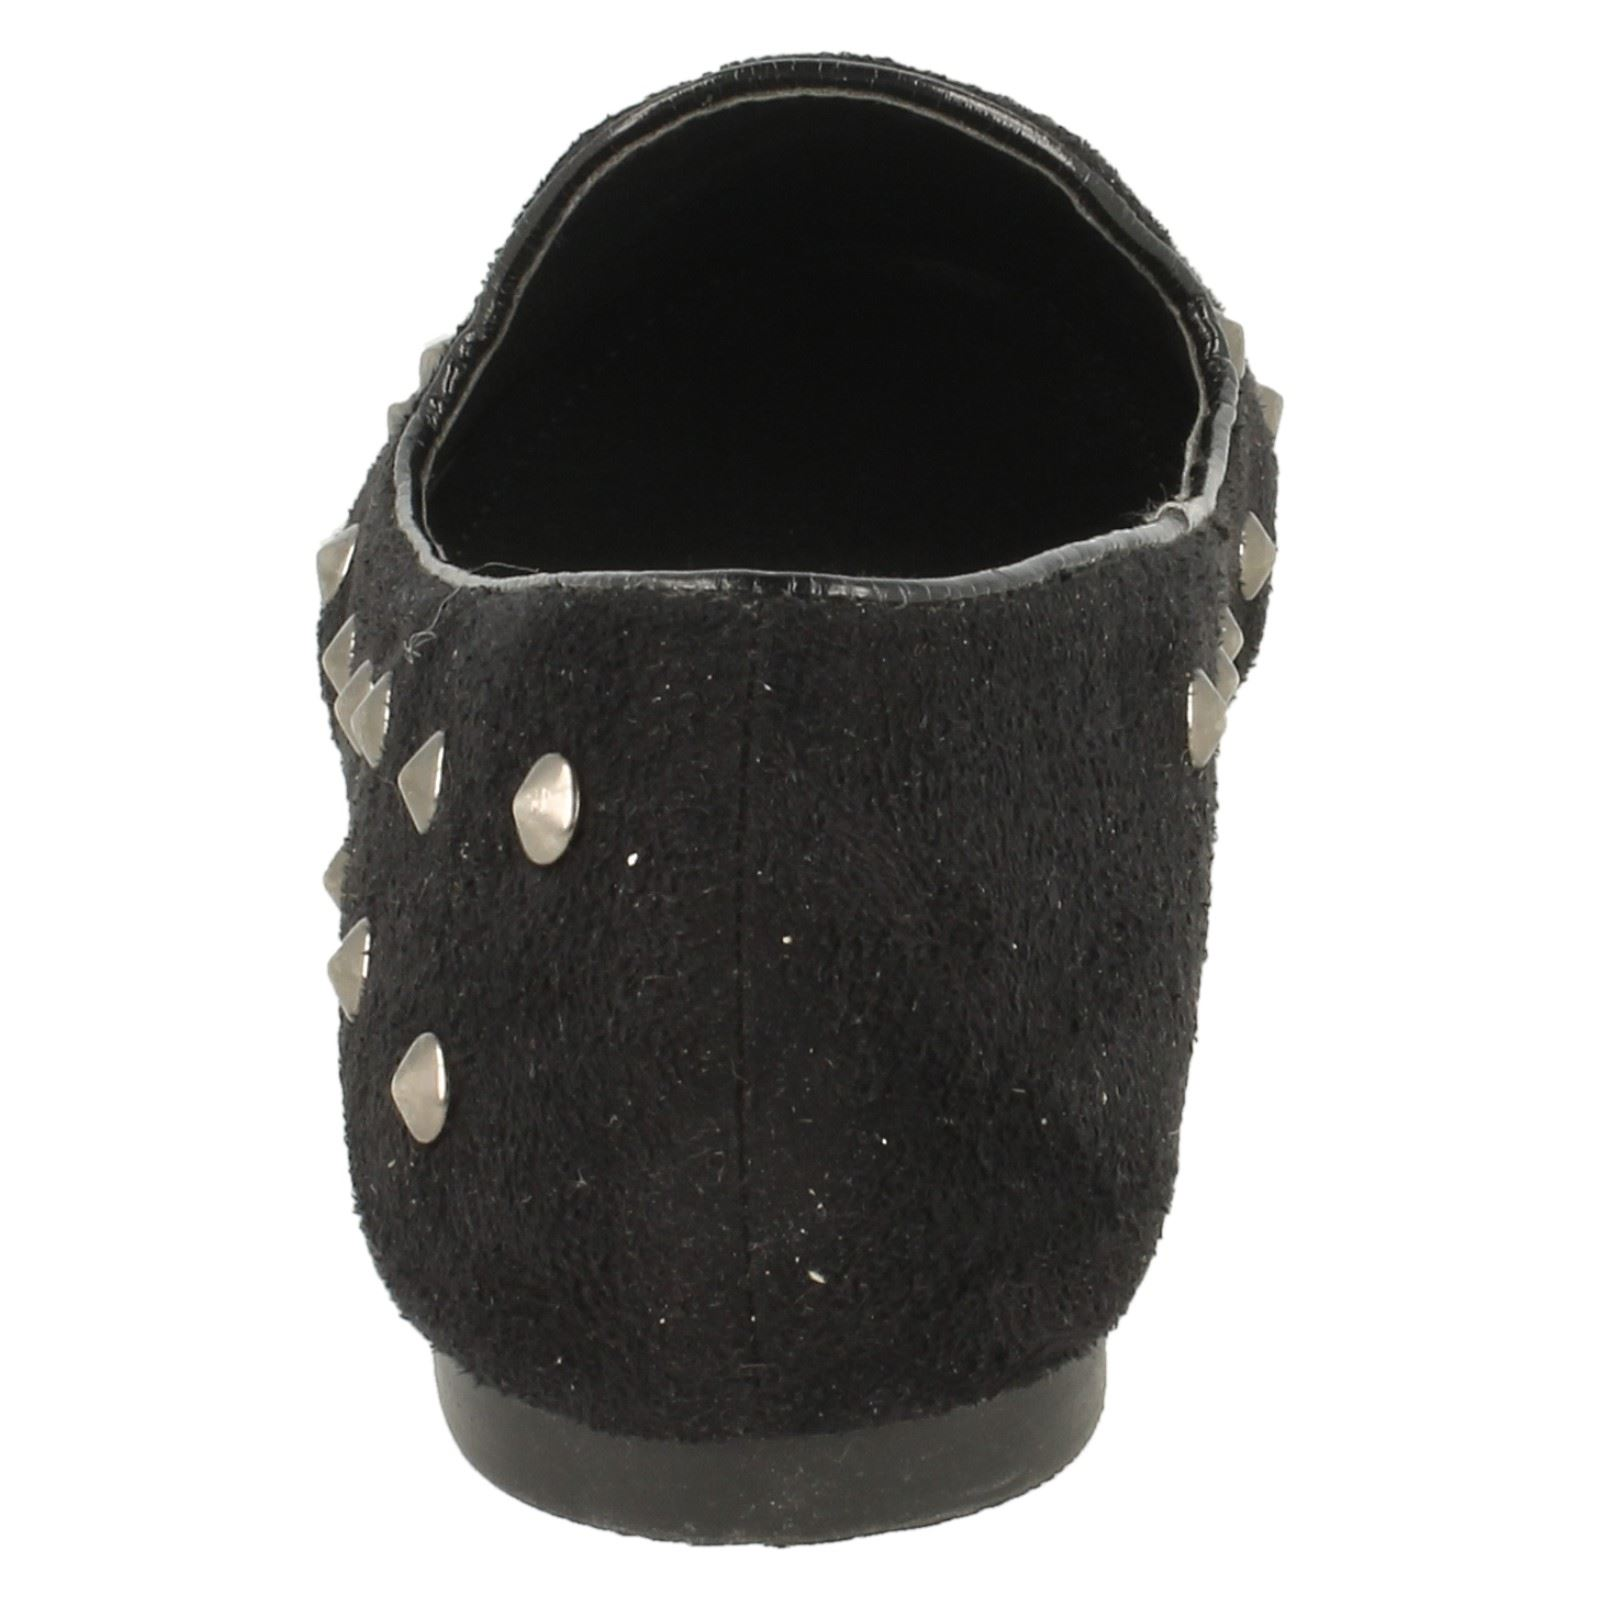 Girls Cutie Studded Loafer Flat Shoes